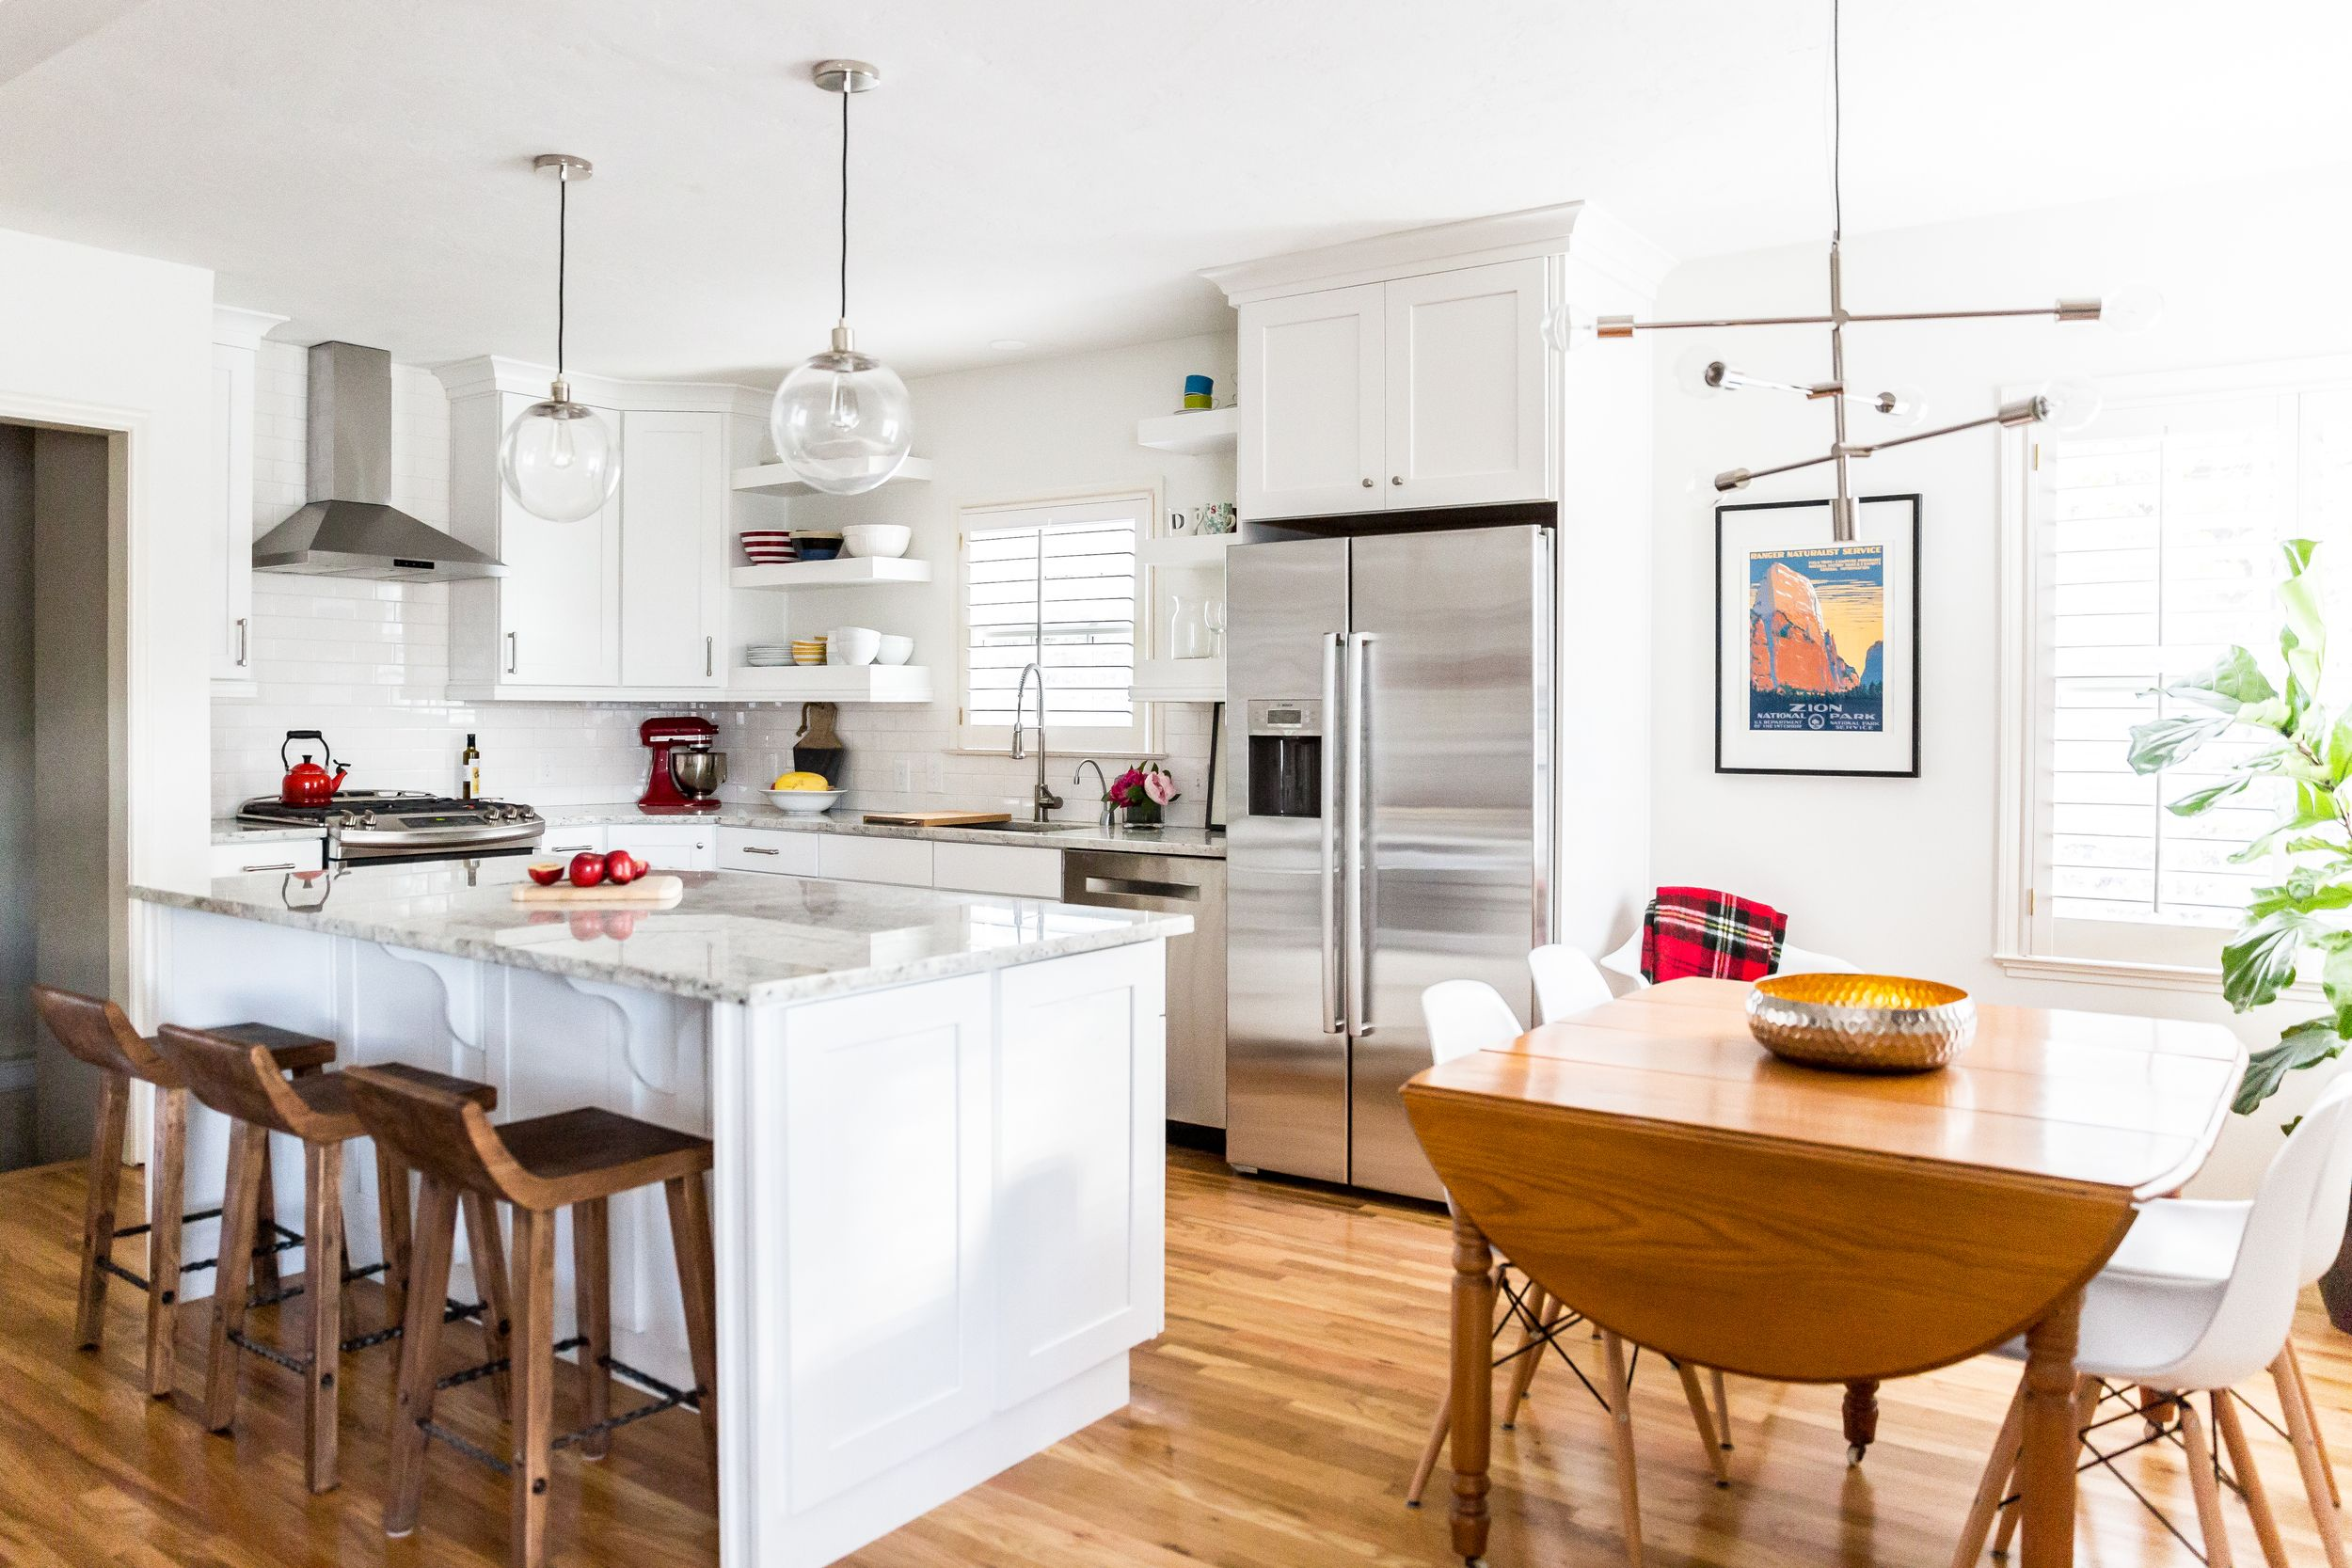 White kitchen remodel with mid century modern detail | k i t c h e n ...